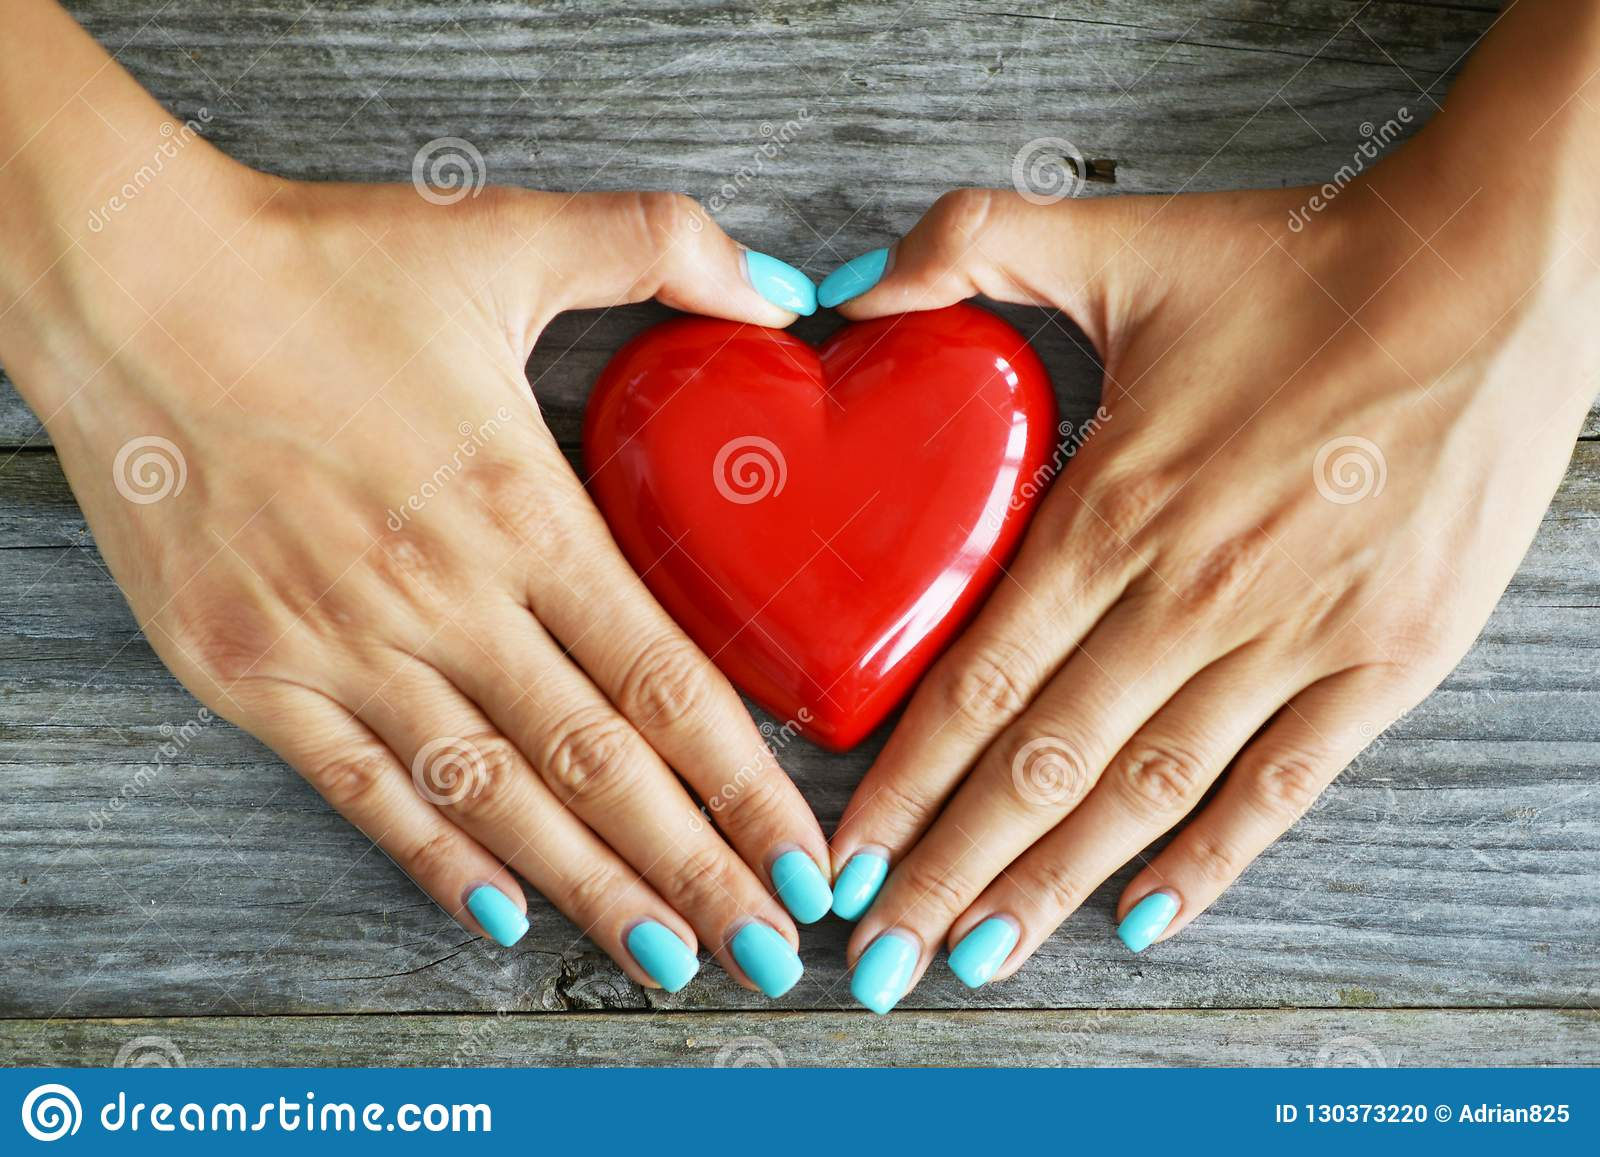 Red heart as love symbol in woman hand on rustic wooden background